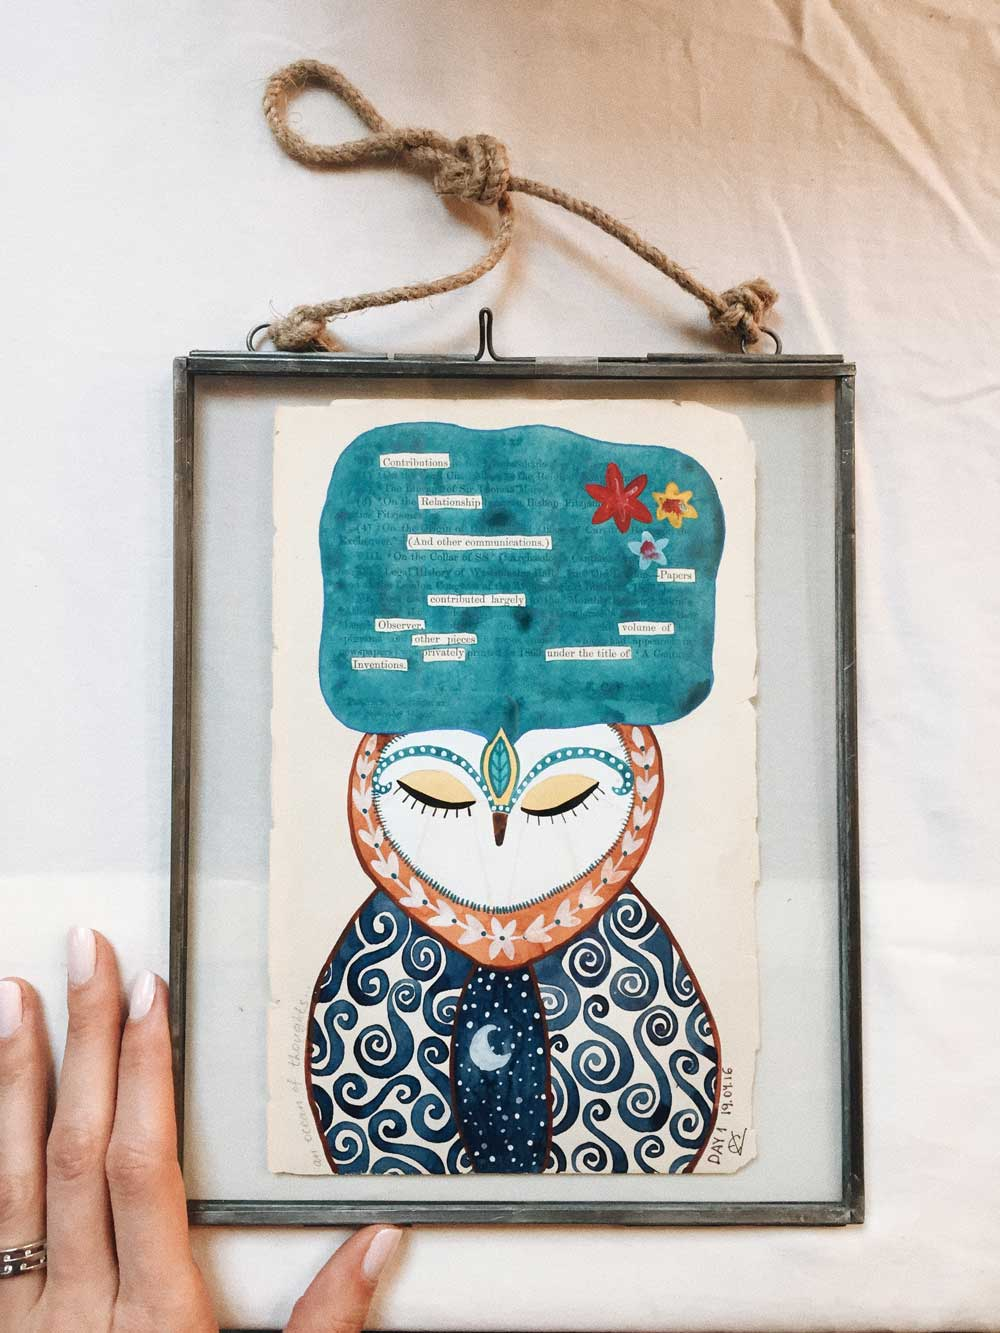 the-ocean-of-thoughts-book-page-painting-framed-eve-devore-1.jpg